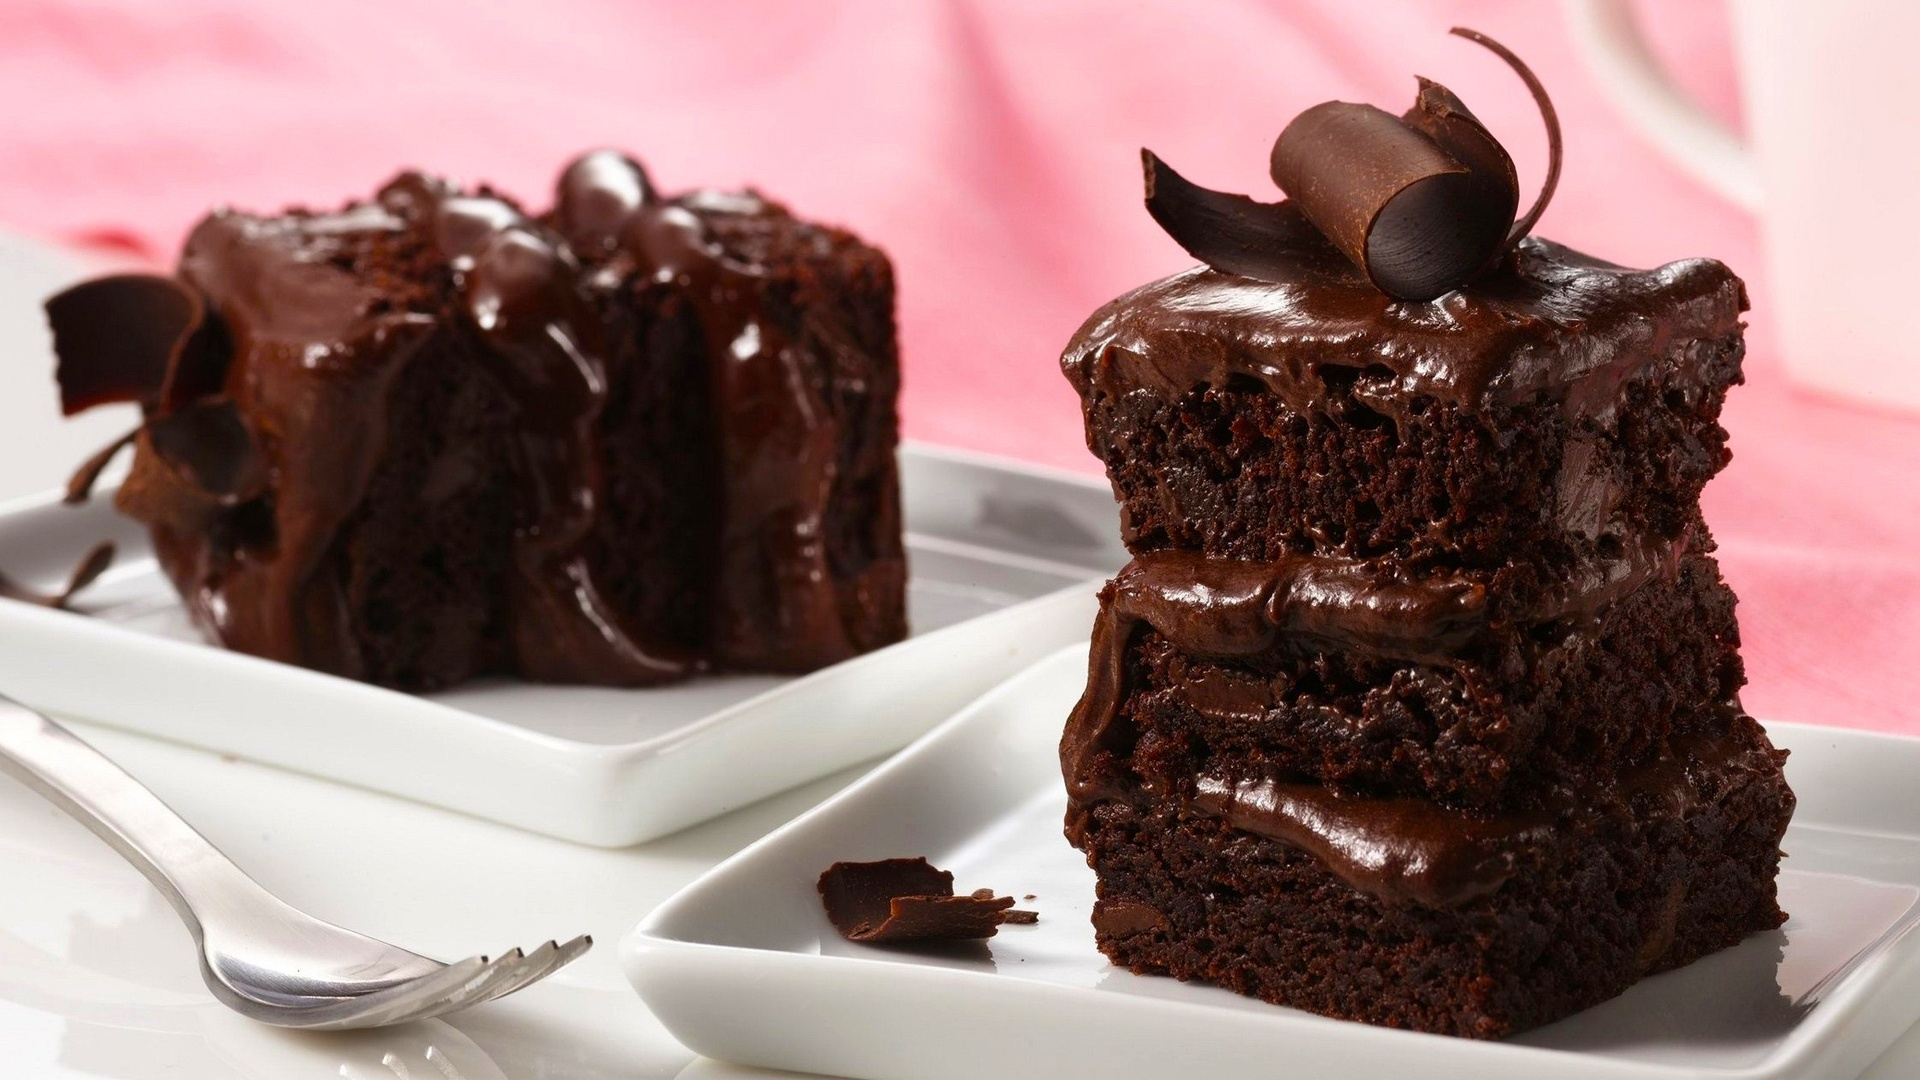 Wallpaper Chocolate Cake